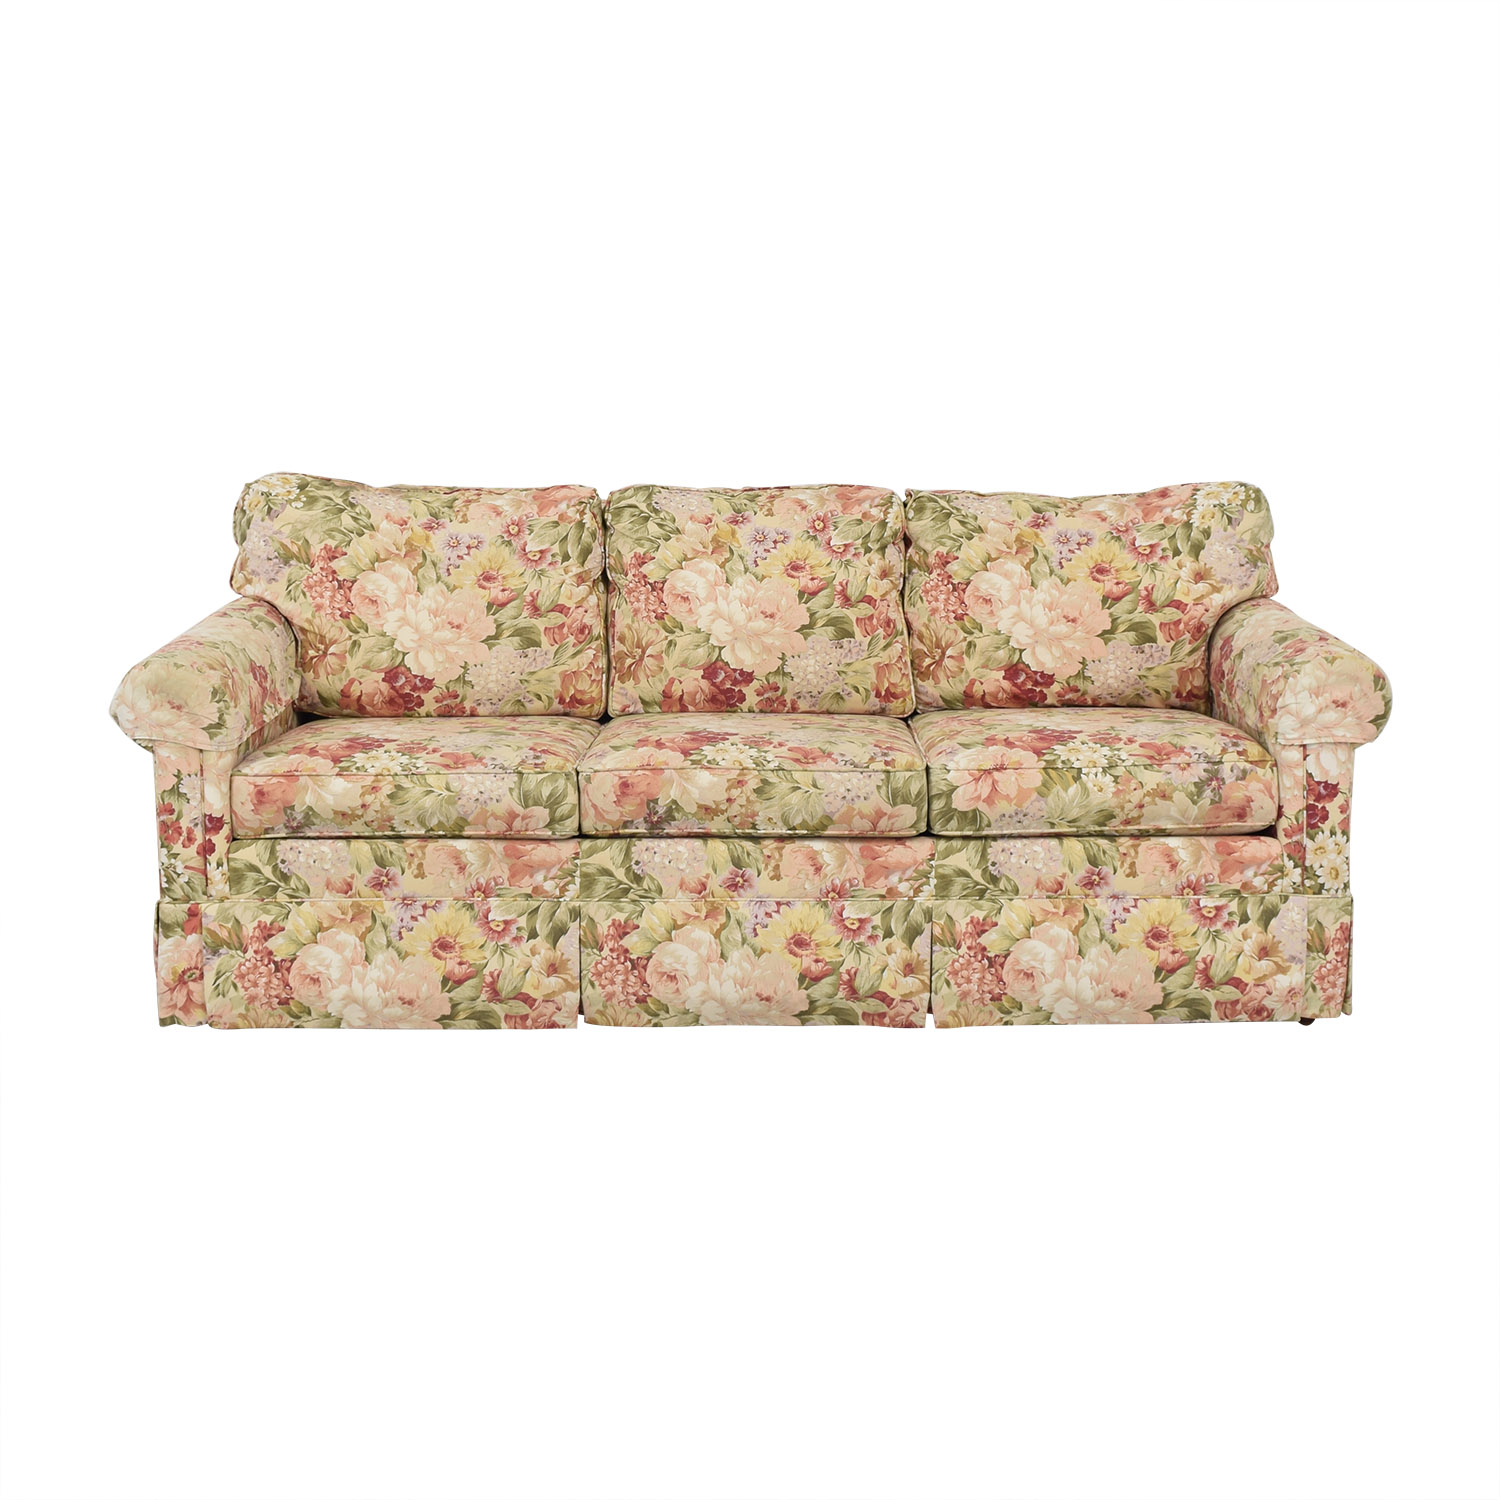 Ethan Allen Ethan Allen Floral Slipcovered Sofa ma